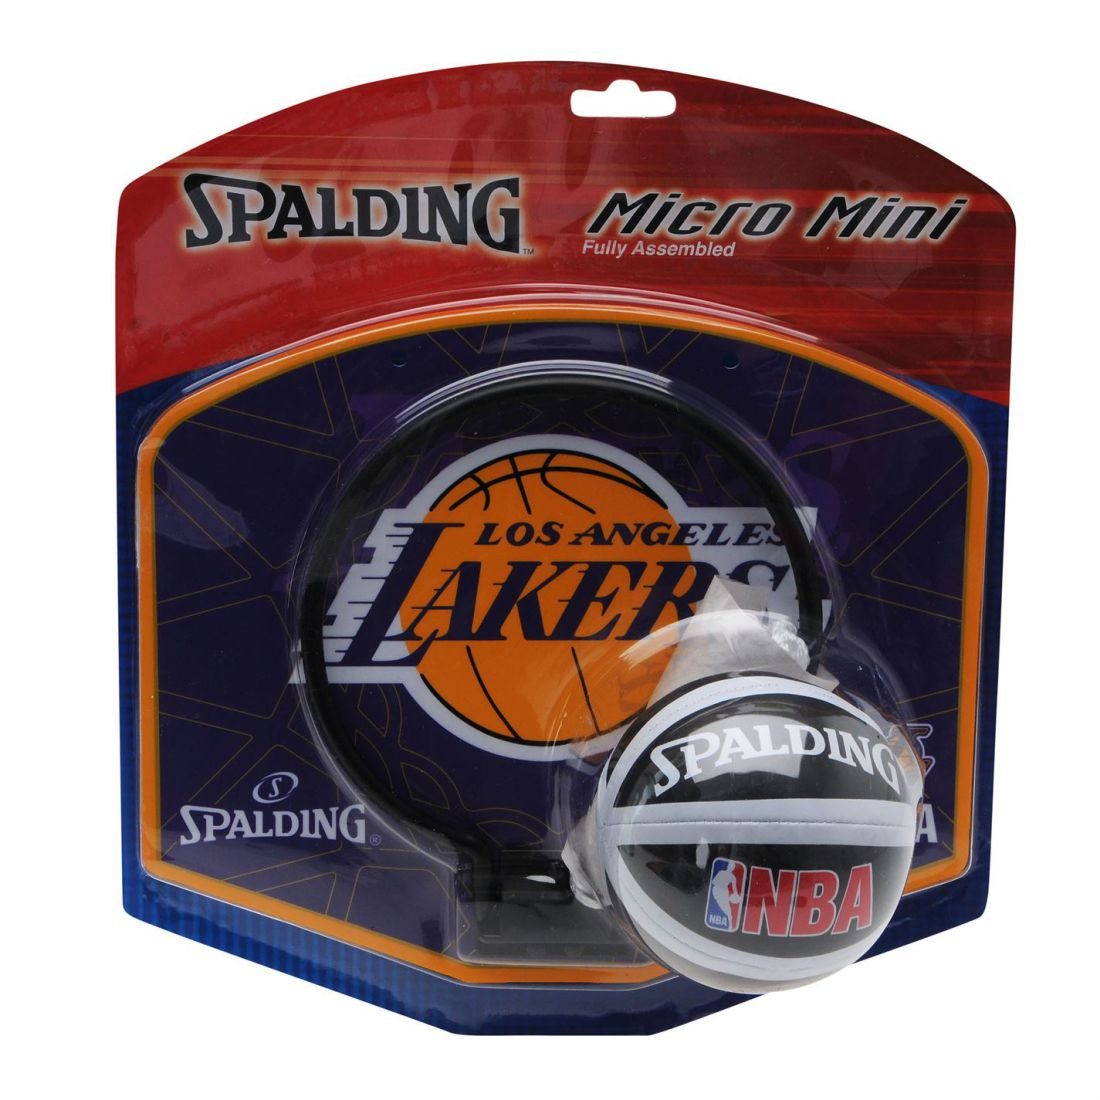 Spalding Team Miniboard Childrens Toy Ball